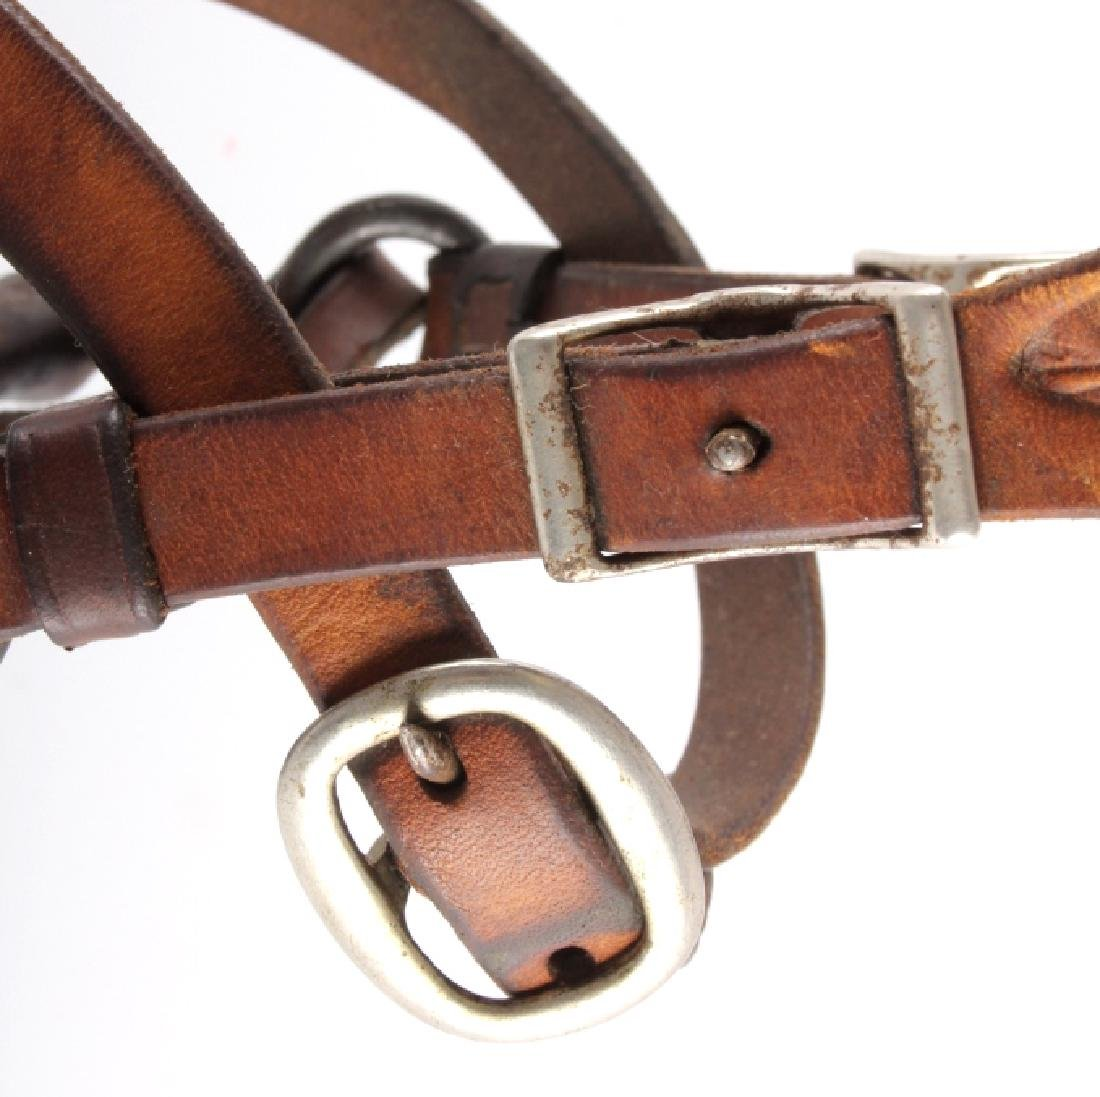 Tooled Leather Headstall w/ U.S. Cavalry Bit - 6